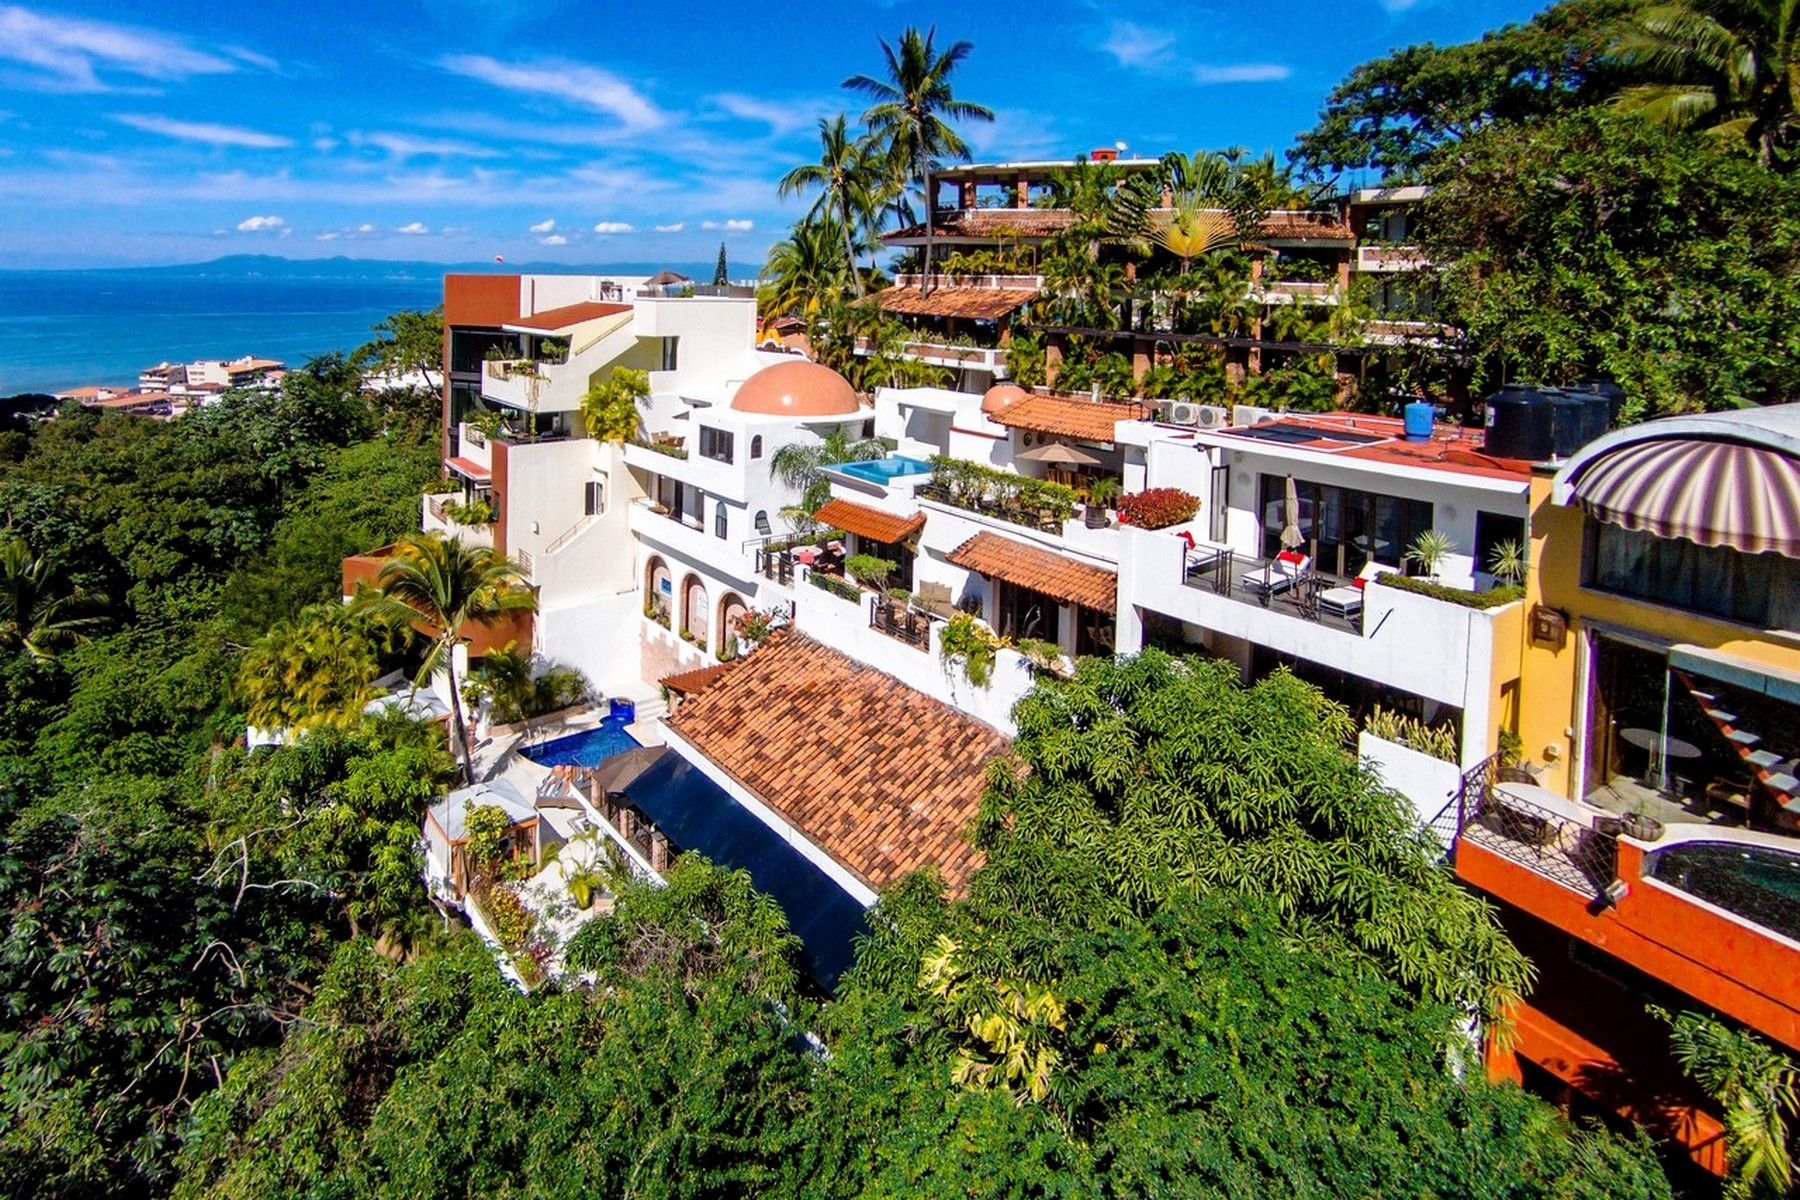 Single Family Home for Sale at Boutique hotel in Las Amapas Puerto Vallarta, 48399 Mexico